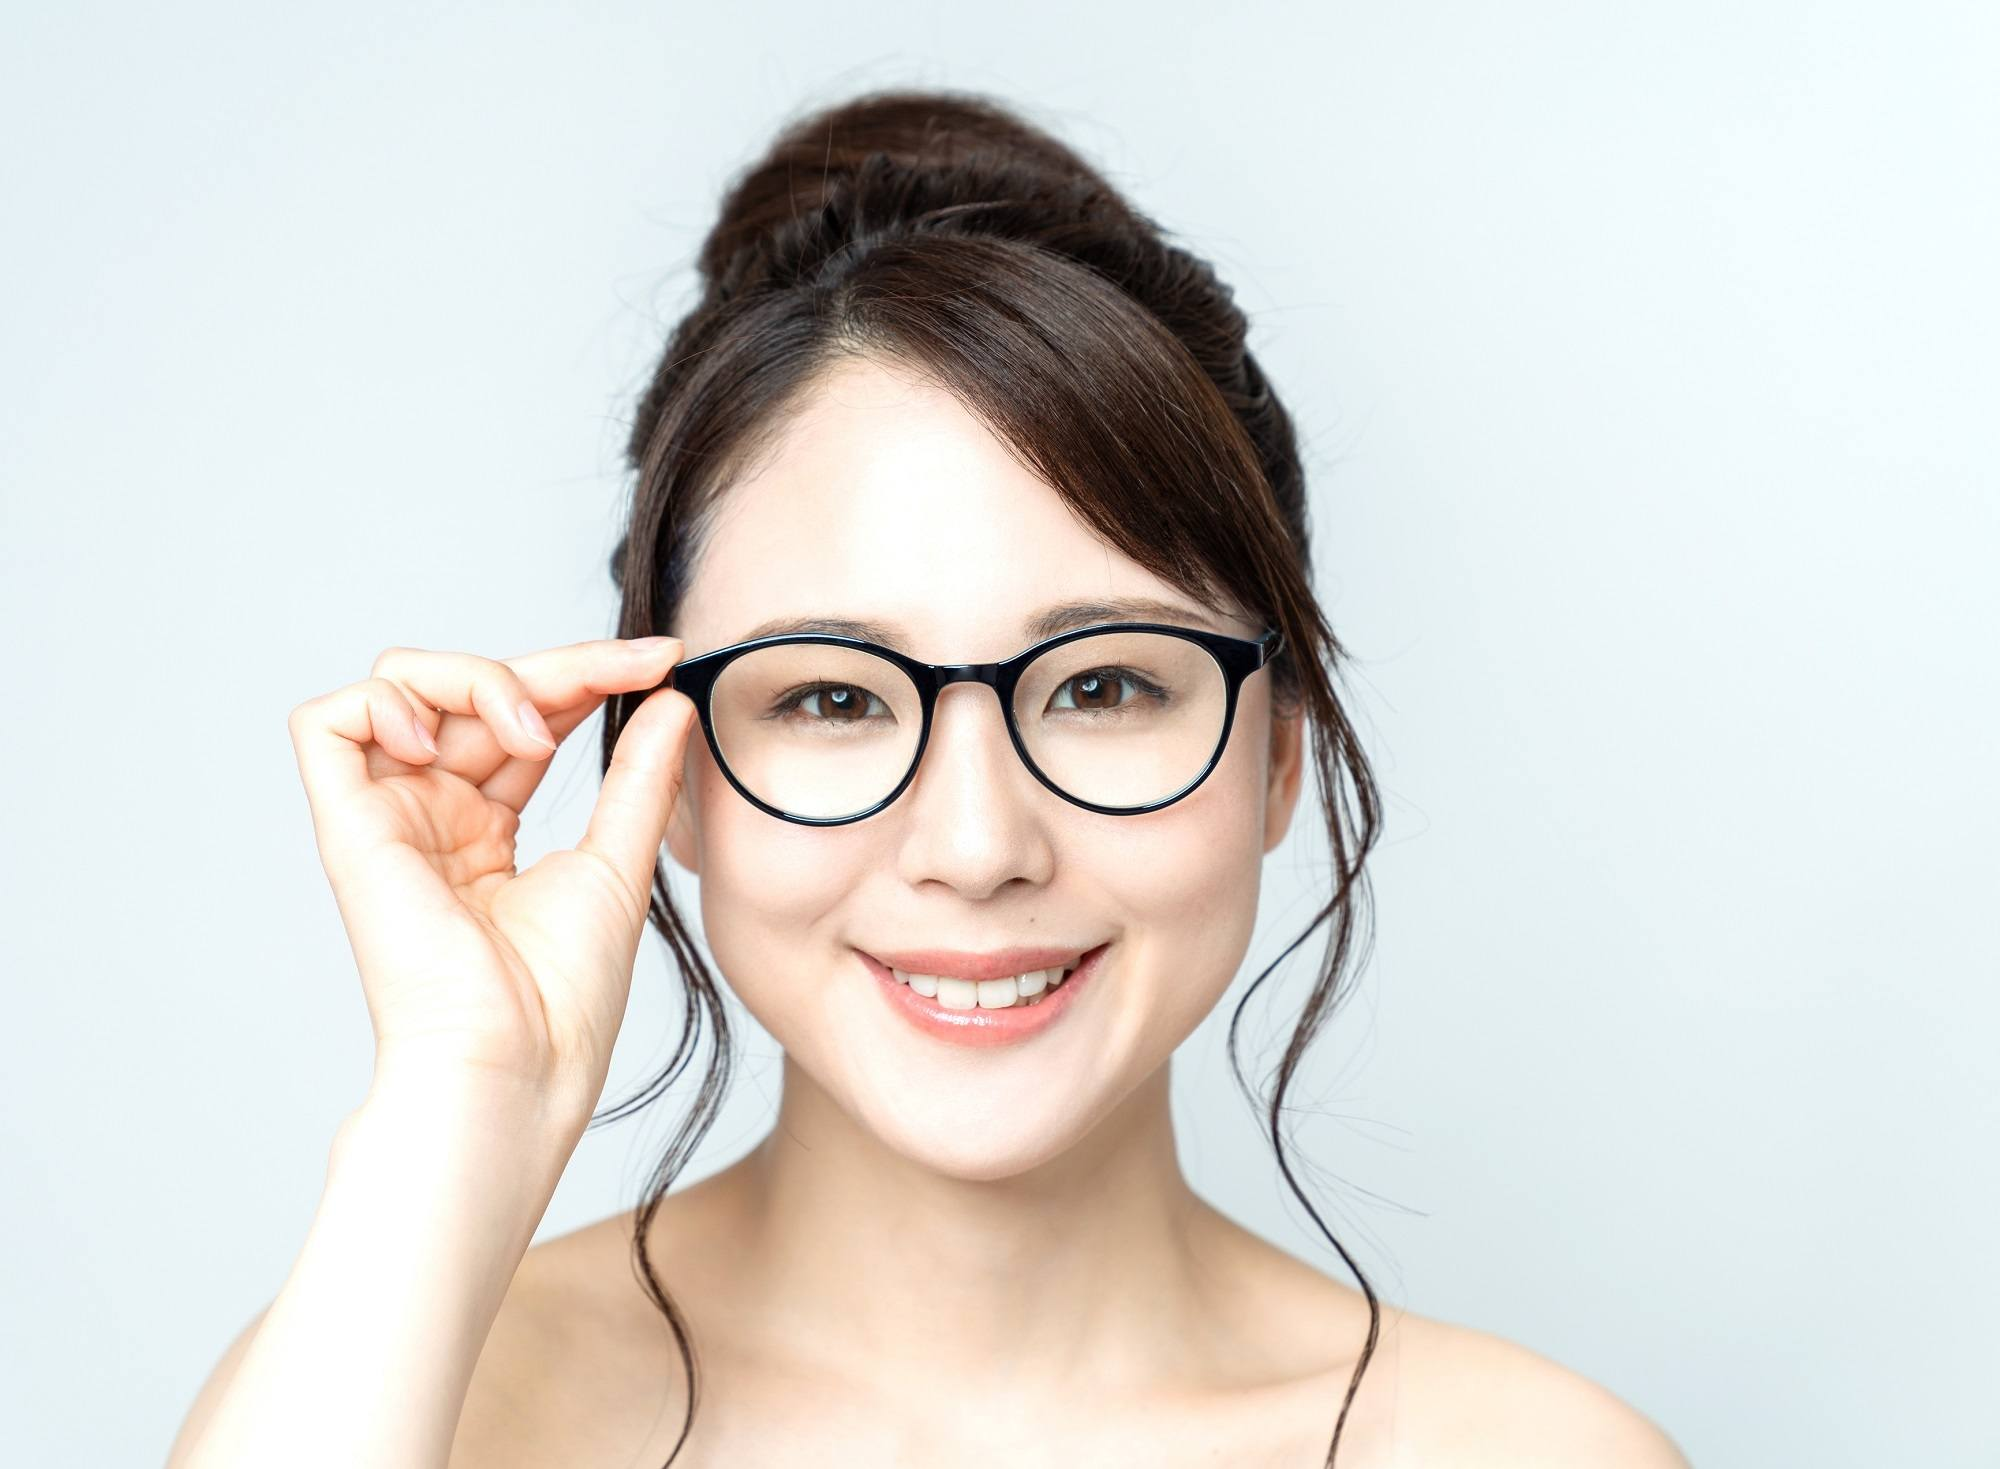 Asian woman with bangs with glasses